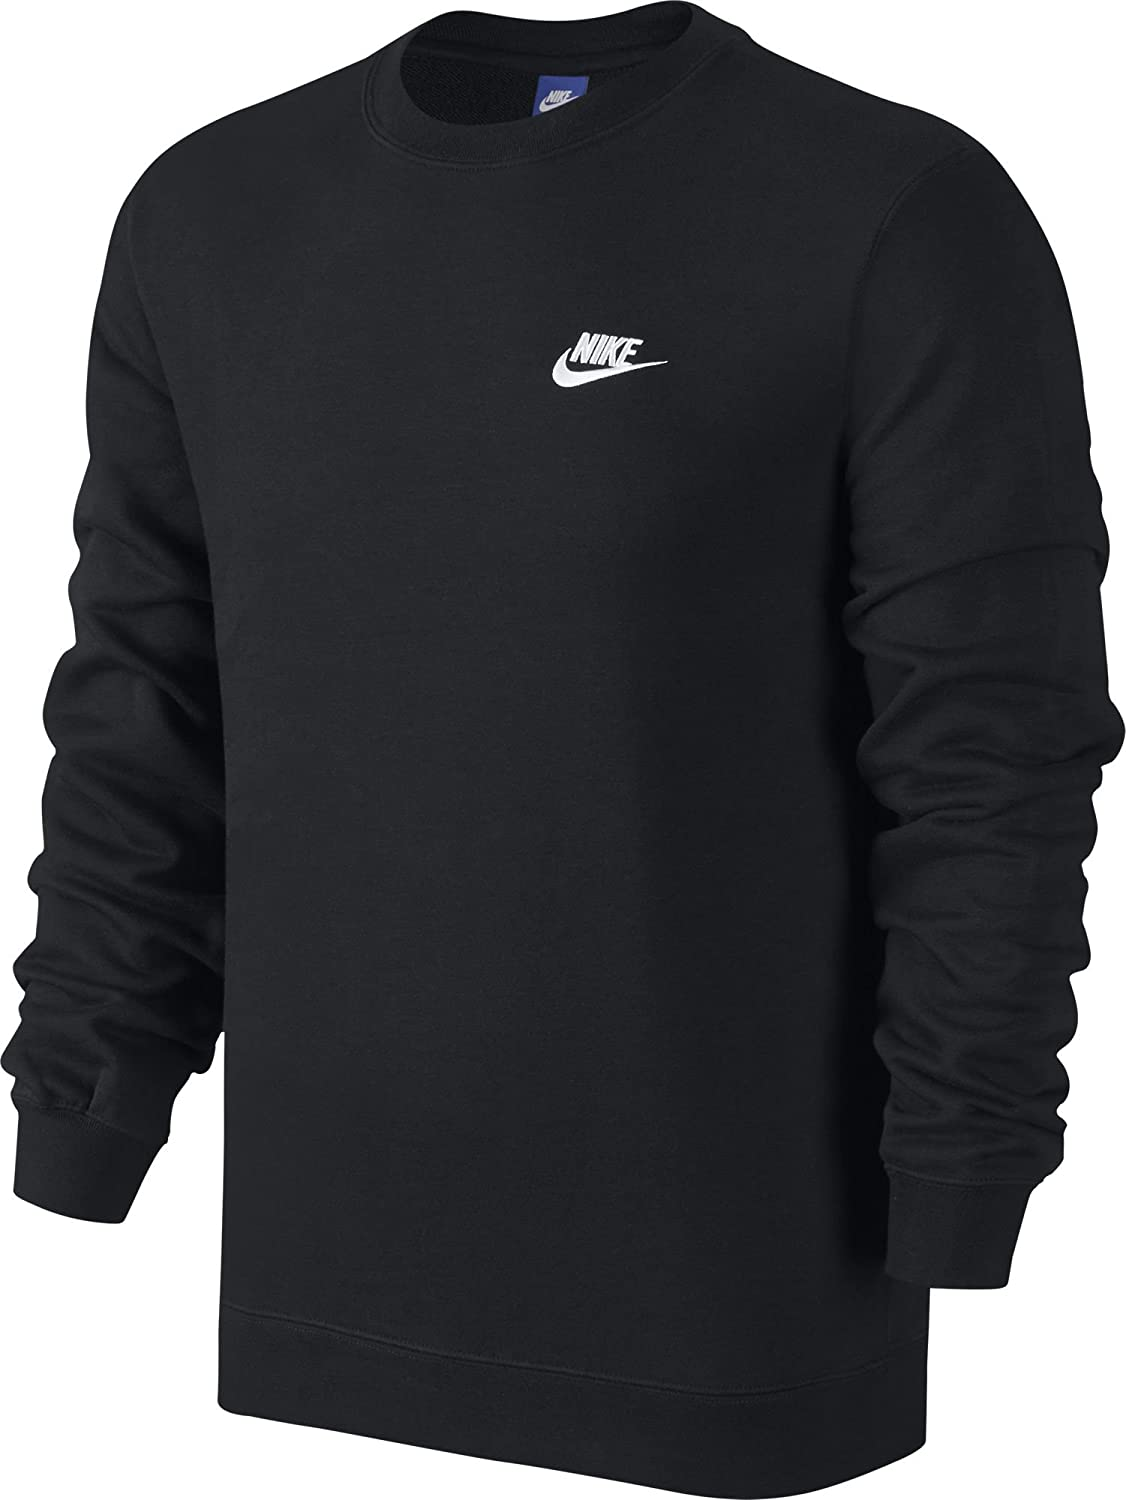 TALLA L. Nike M NSW CRW Ft Club Camiseta de Manga Larga, Hombre